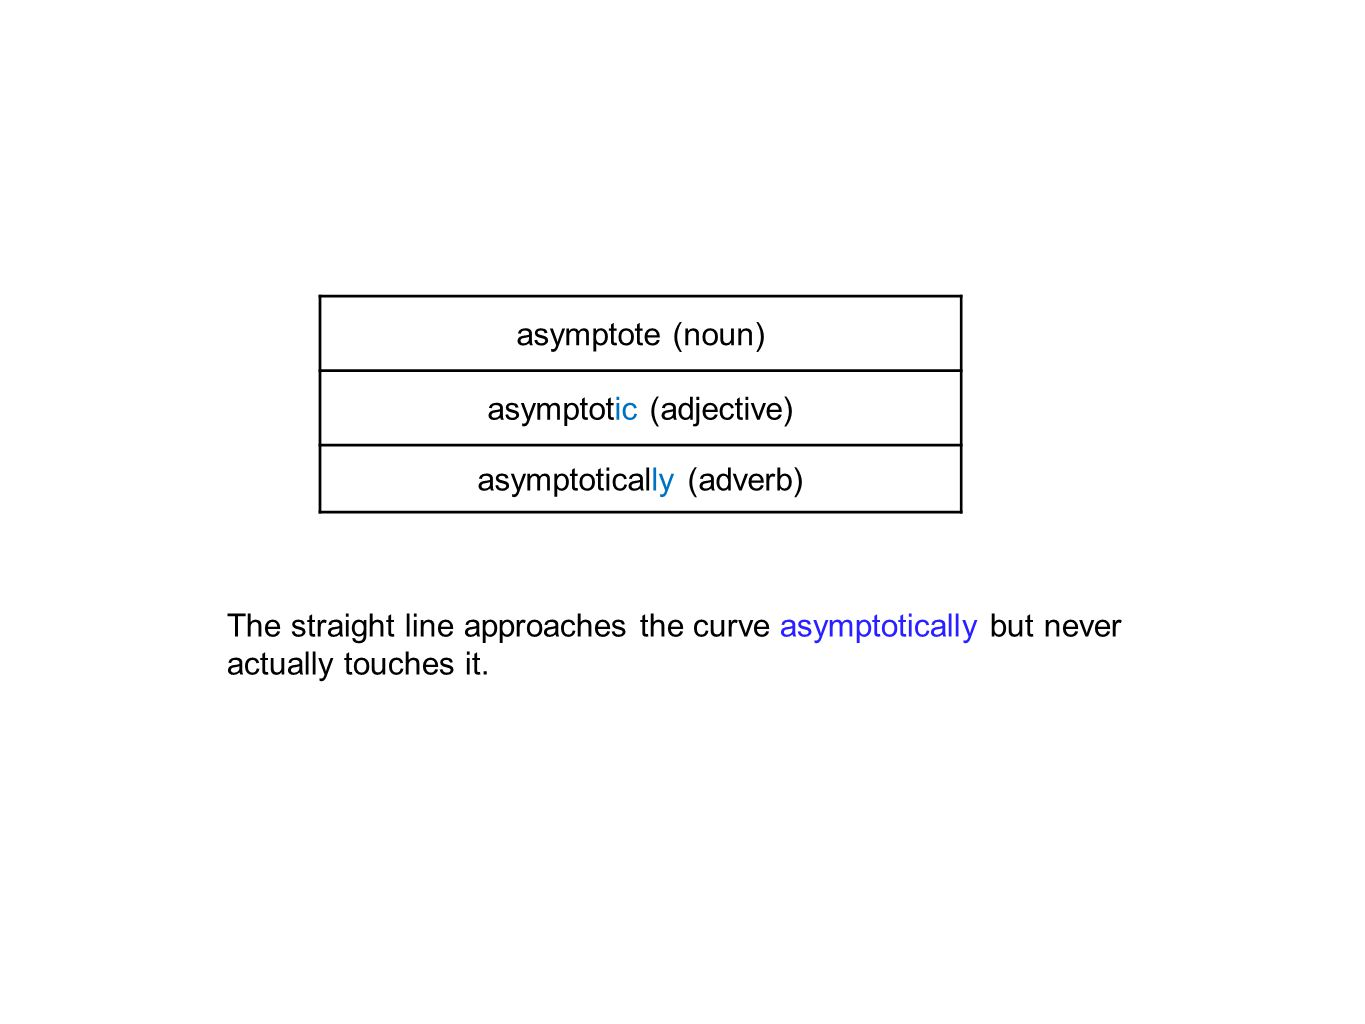 The straight line approaches the curve asymptotically but never actually touches it.